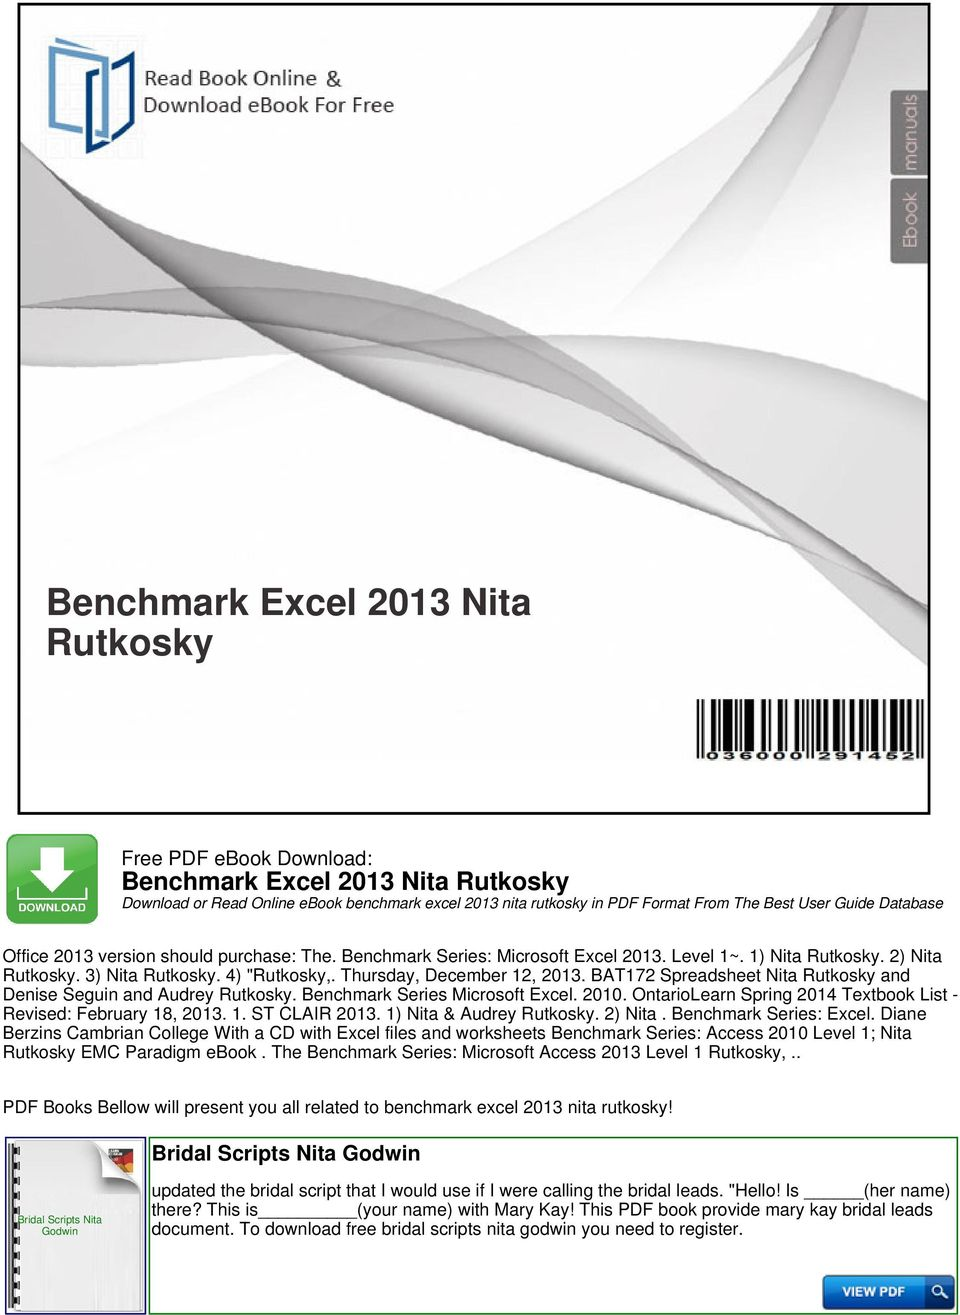 BAT172 Spreadsheet Nita Rutkosky and Denise Seguin and Audrey Rutkosky. Series. 2010. OntarioLearn Spring 2014 Textbook List - Revised: February 18, 2013. 1. ST CLAIR 2013. 1) Nita & Audrey Rutkosky.